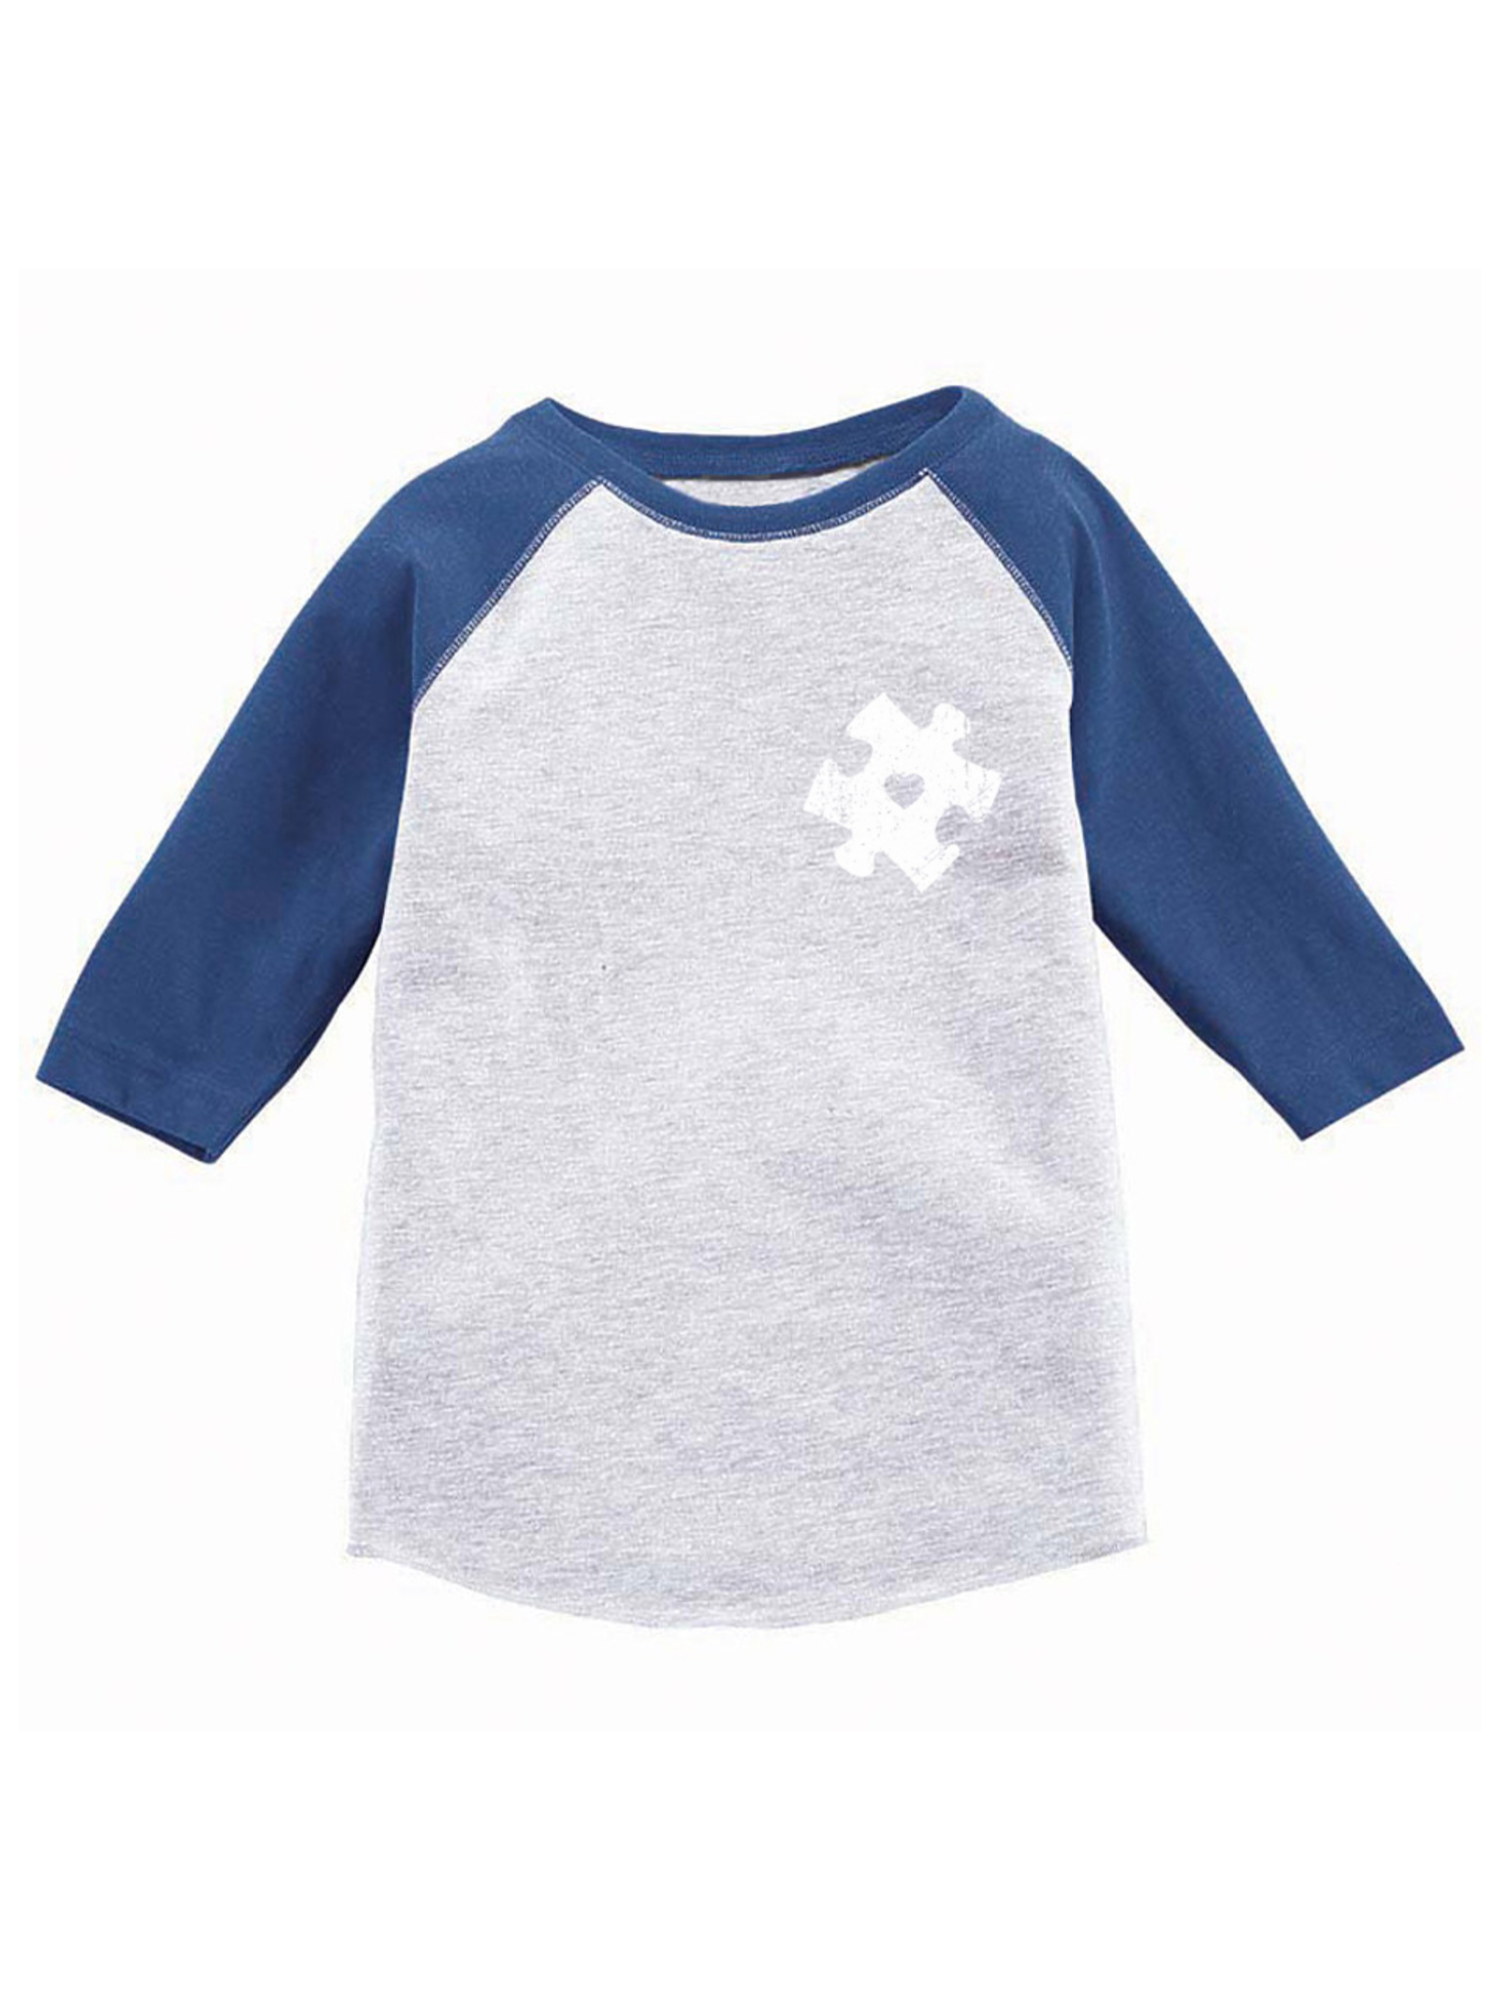 Autism Carers Proud mum of a child with Autism Petite Fit Tees